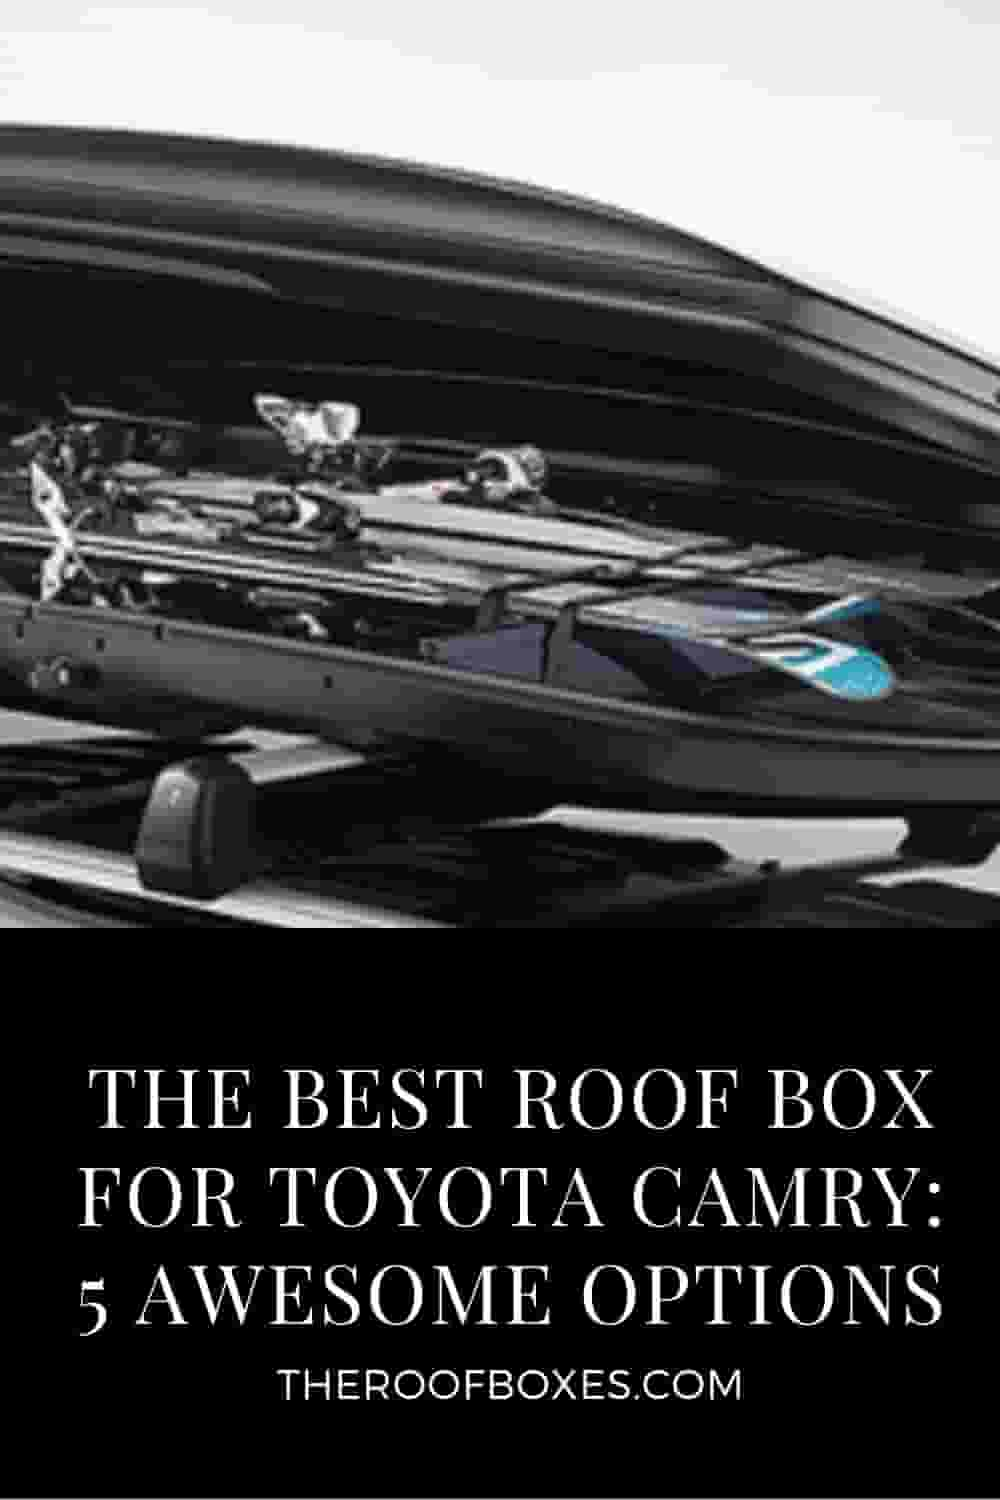 Roof Box For Toyota Camry – Reviews and Comparison